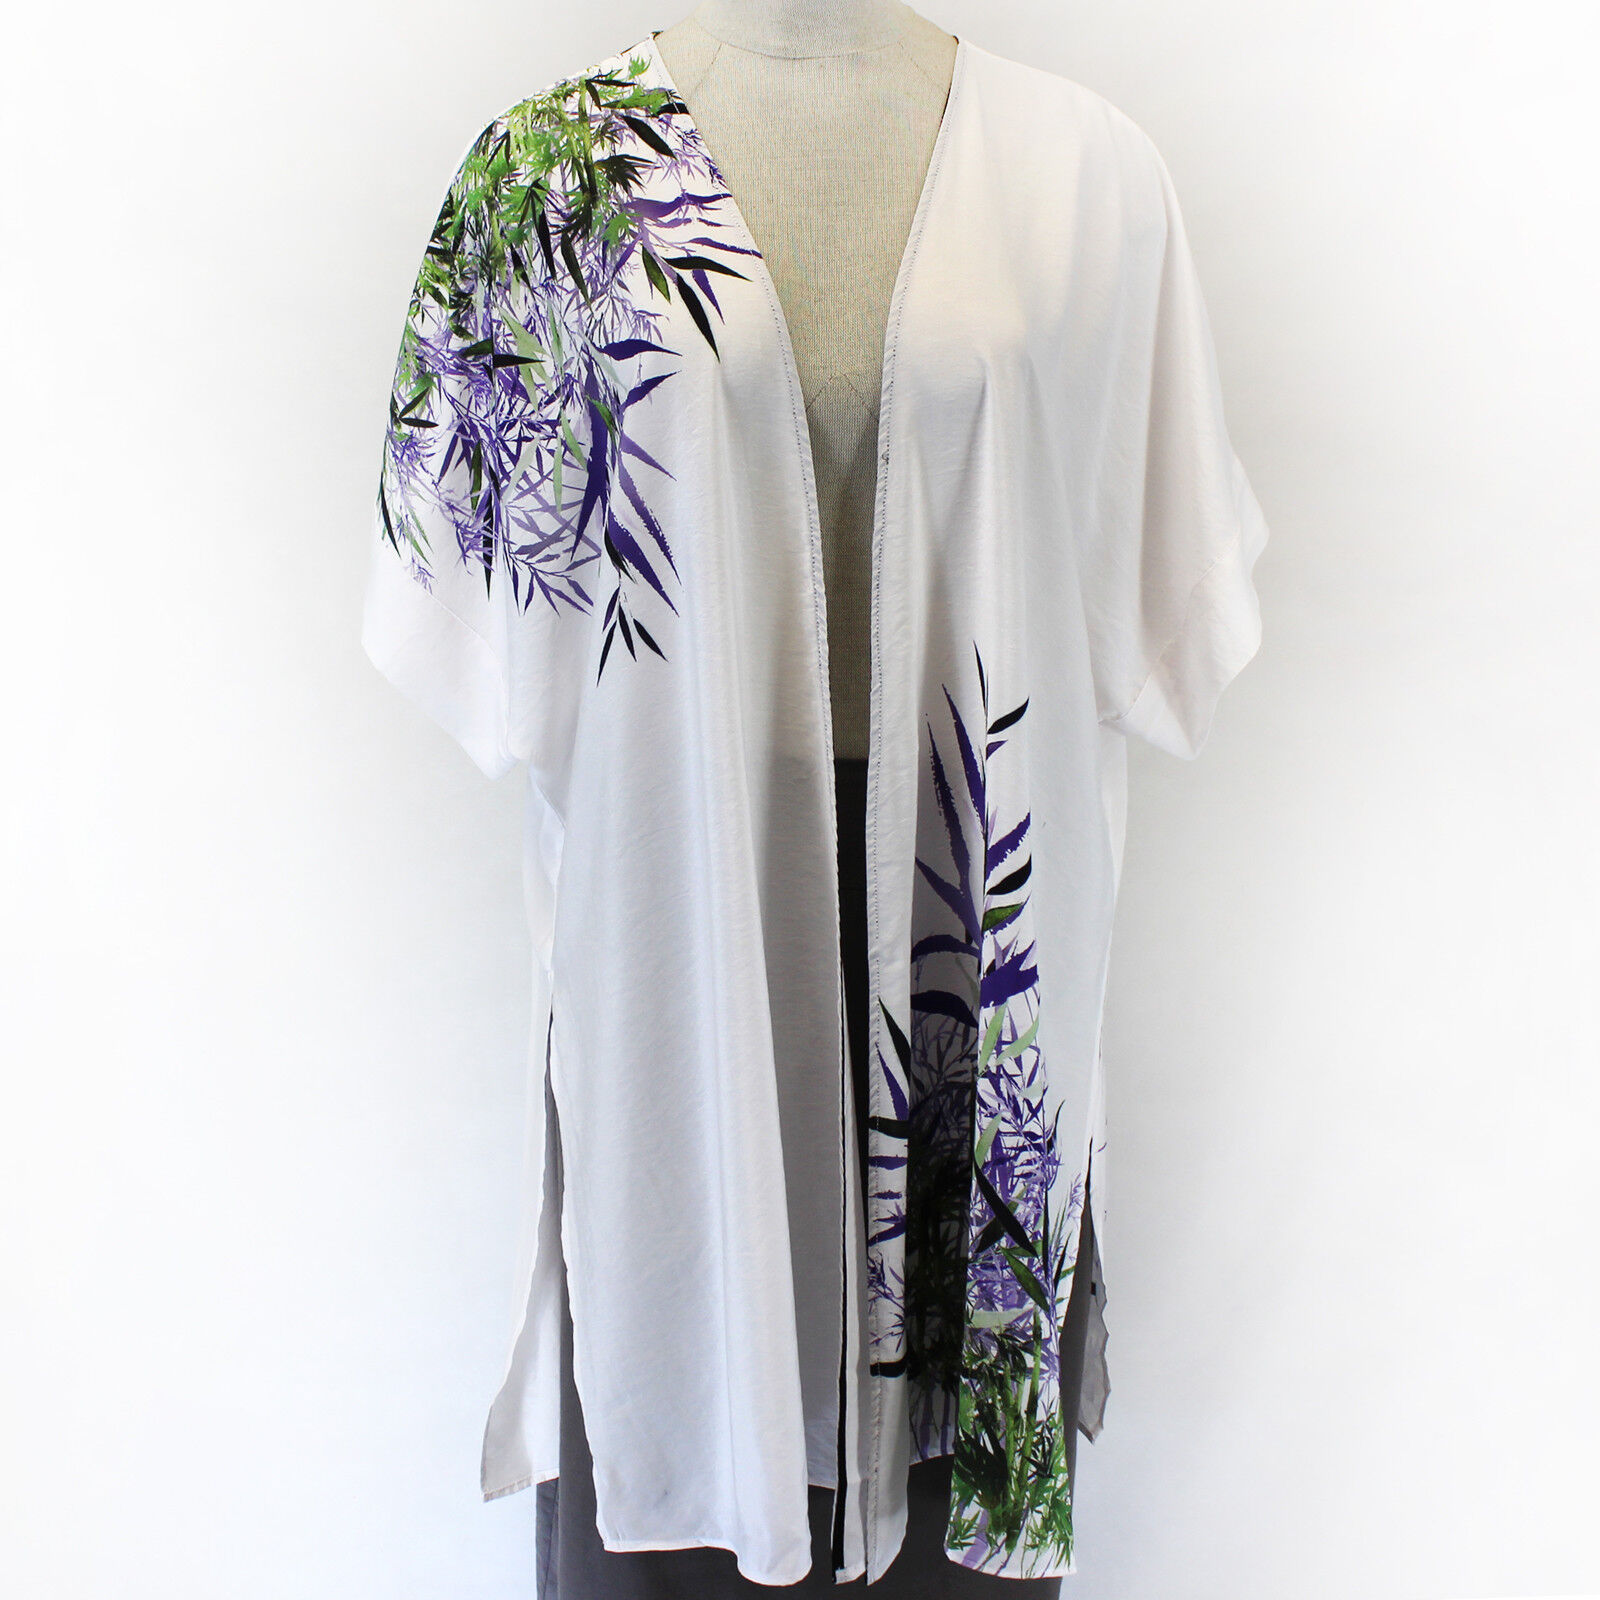 Citron Clothing Japanese Art Lavender Bamboo Blouse Tops Kimono Plus 2X